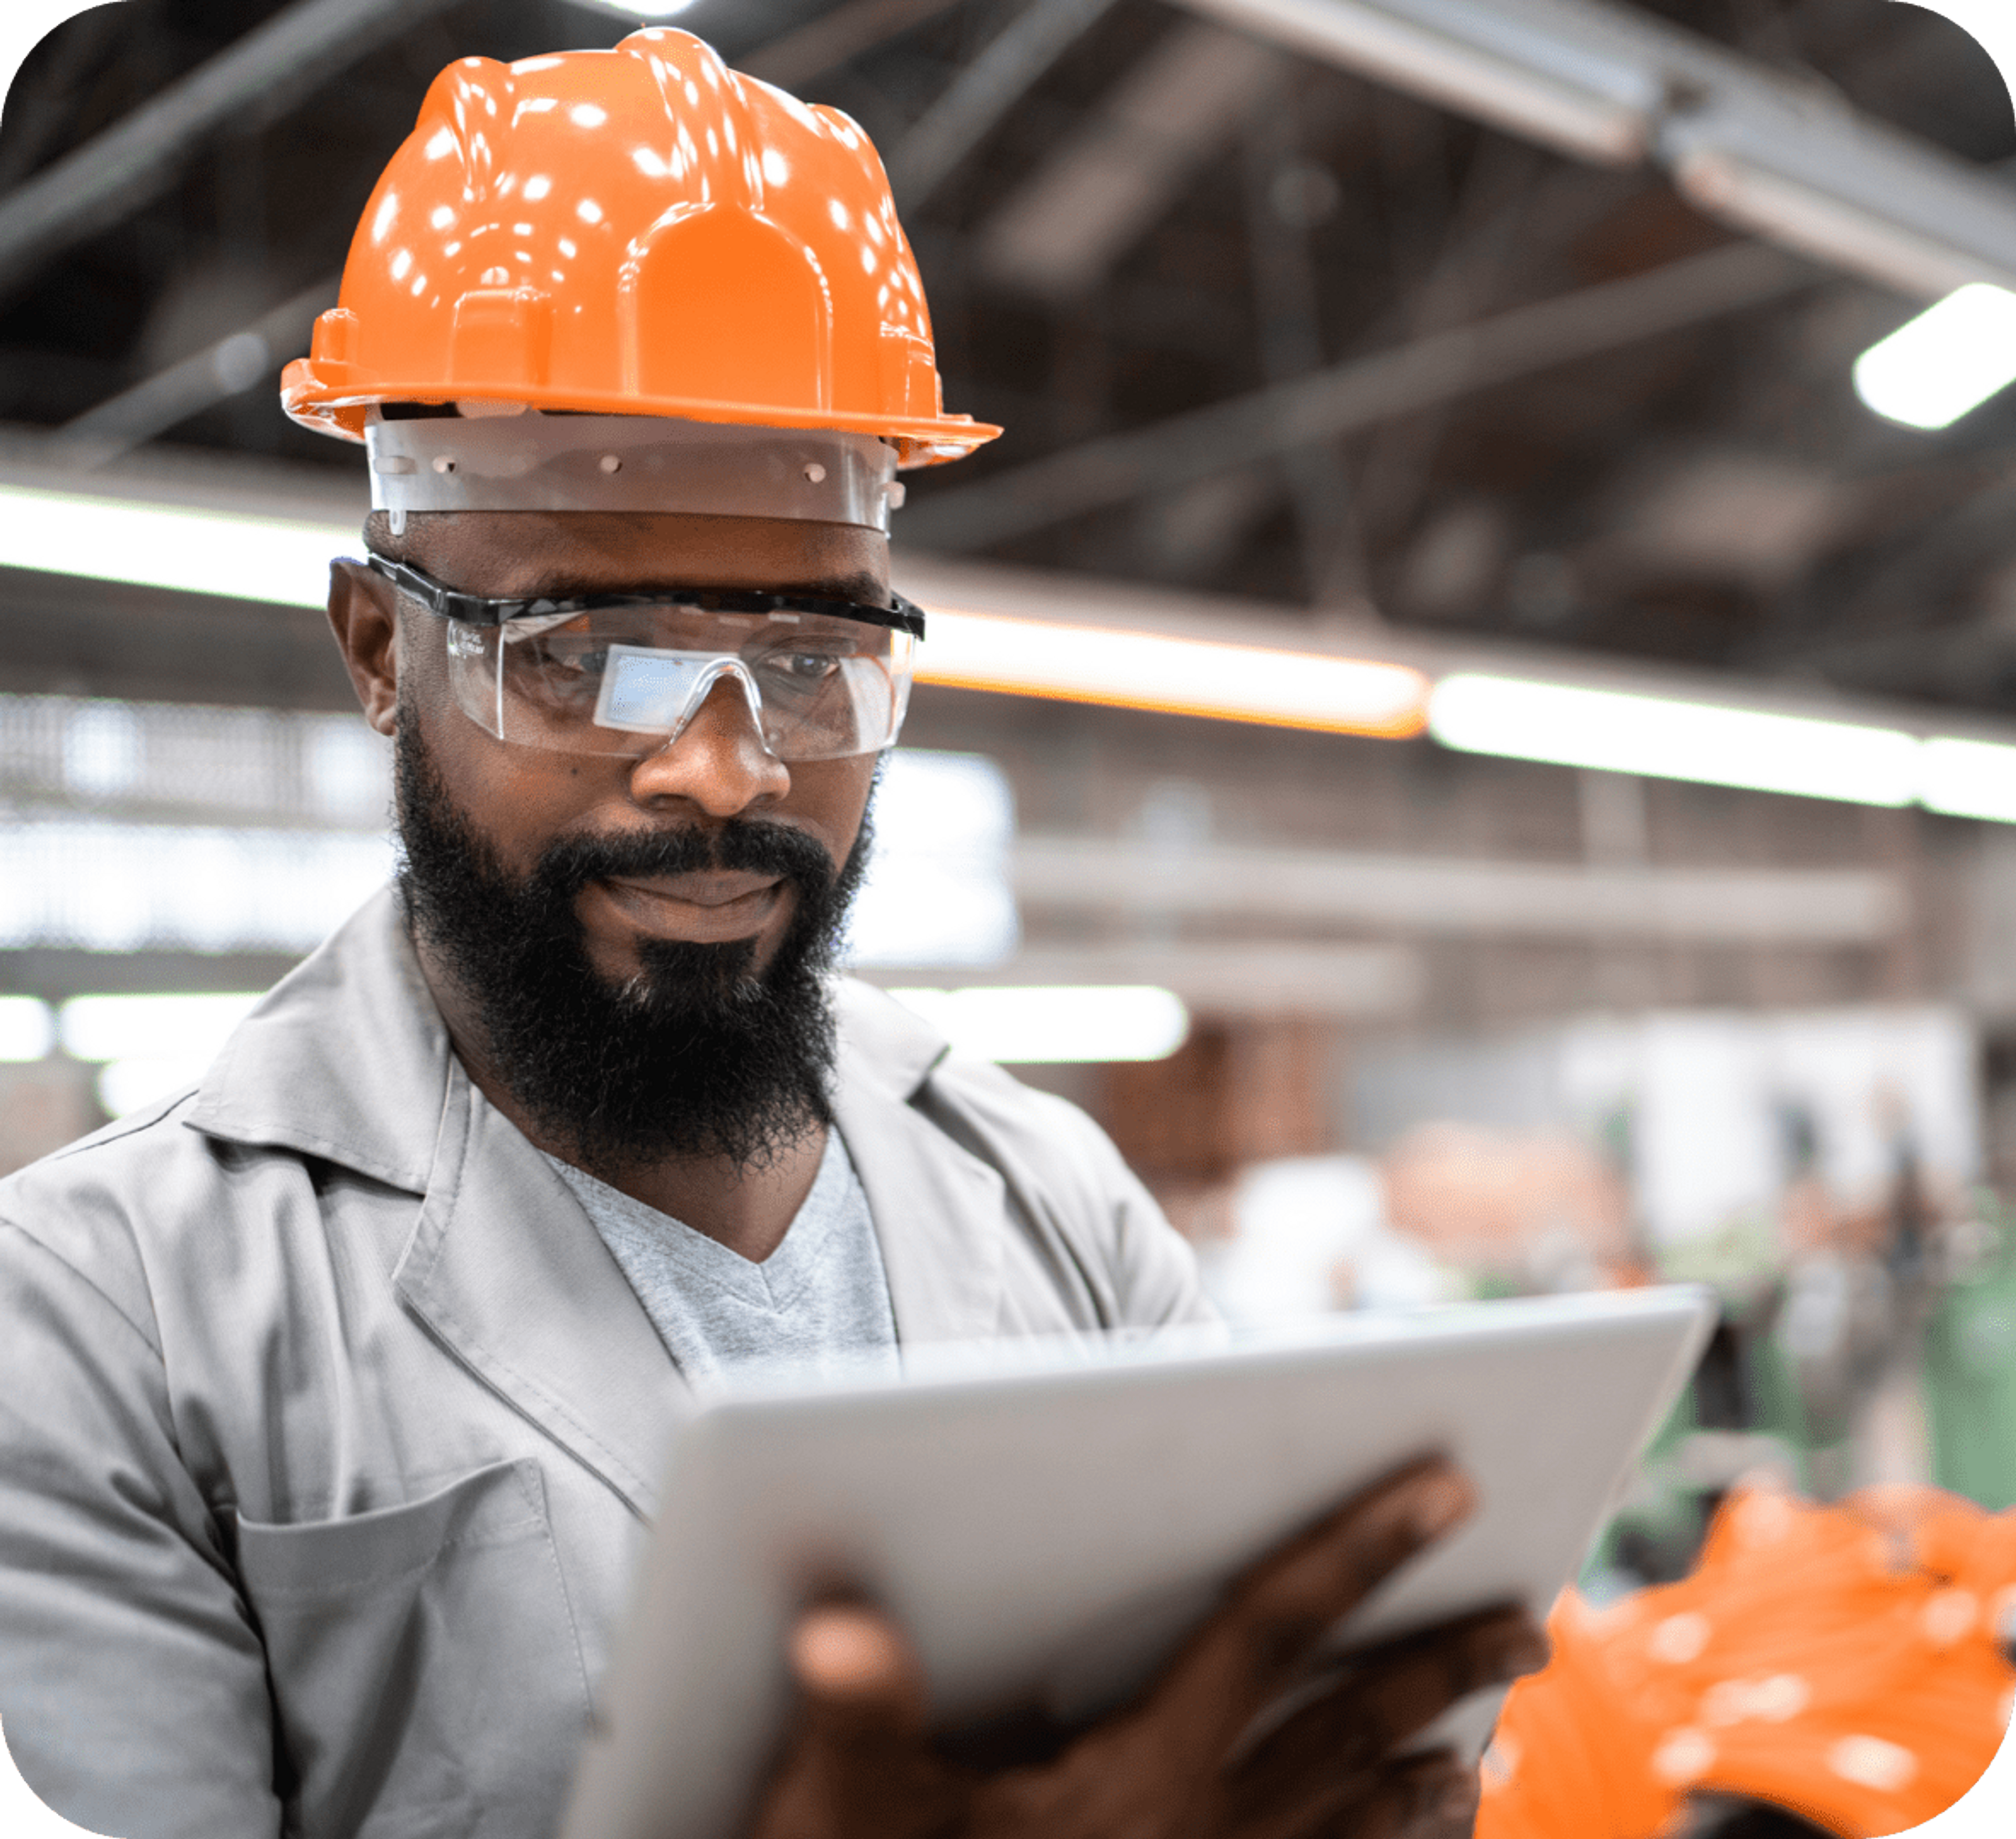 Picture of African man wearing safety glasses, orange hard hat, gray coat and gray t-shirt while holding a white clipboard and seems to be reflecting about the data he is reading on that clipboard